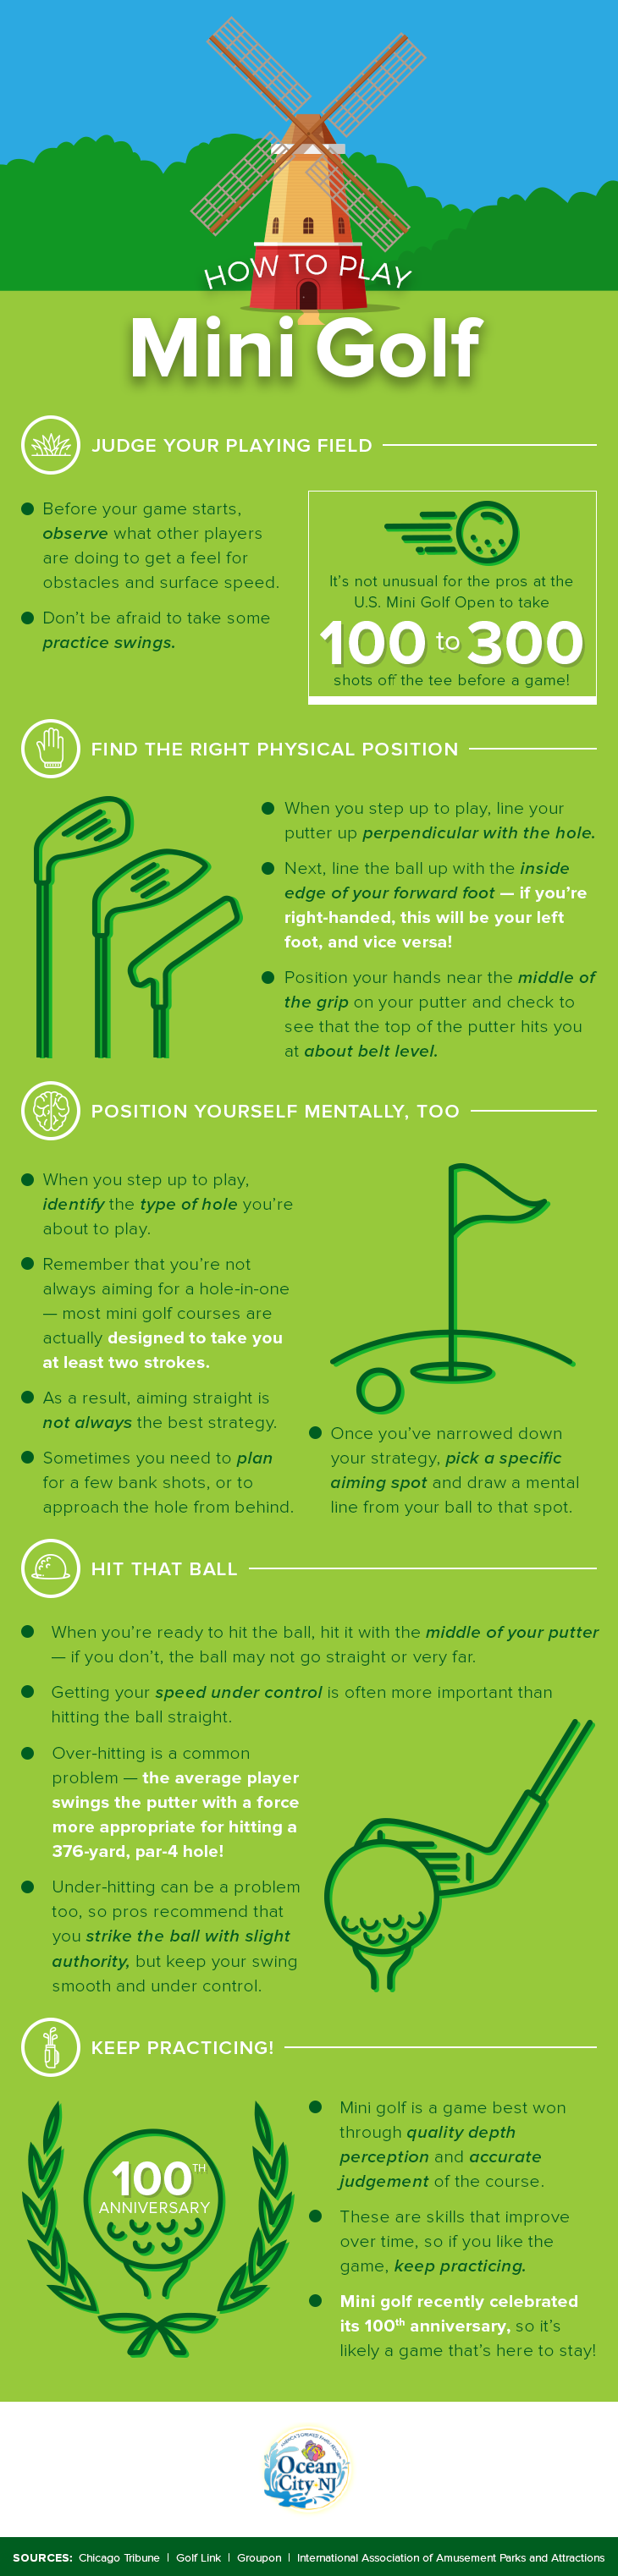 How to Play Mini Golf Infographic